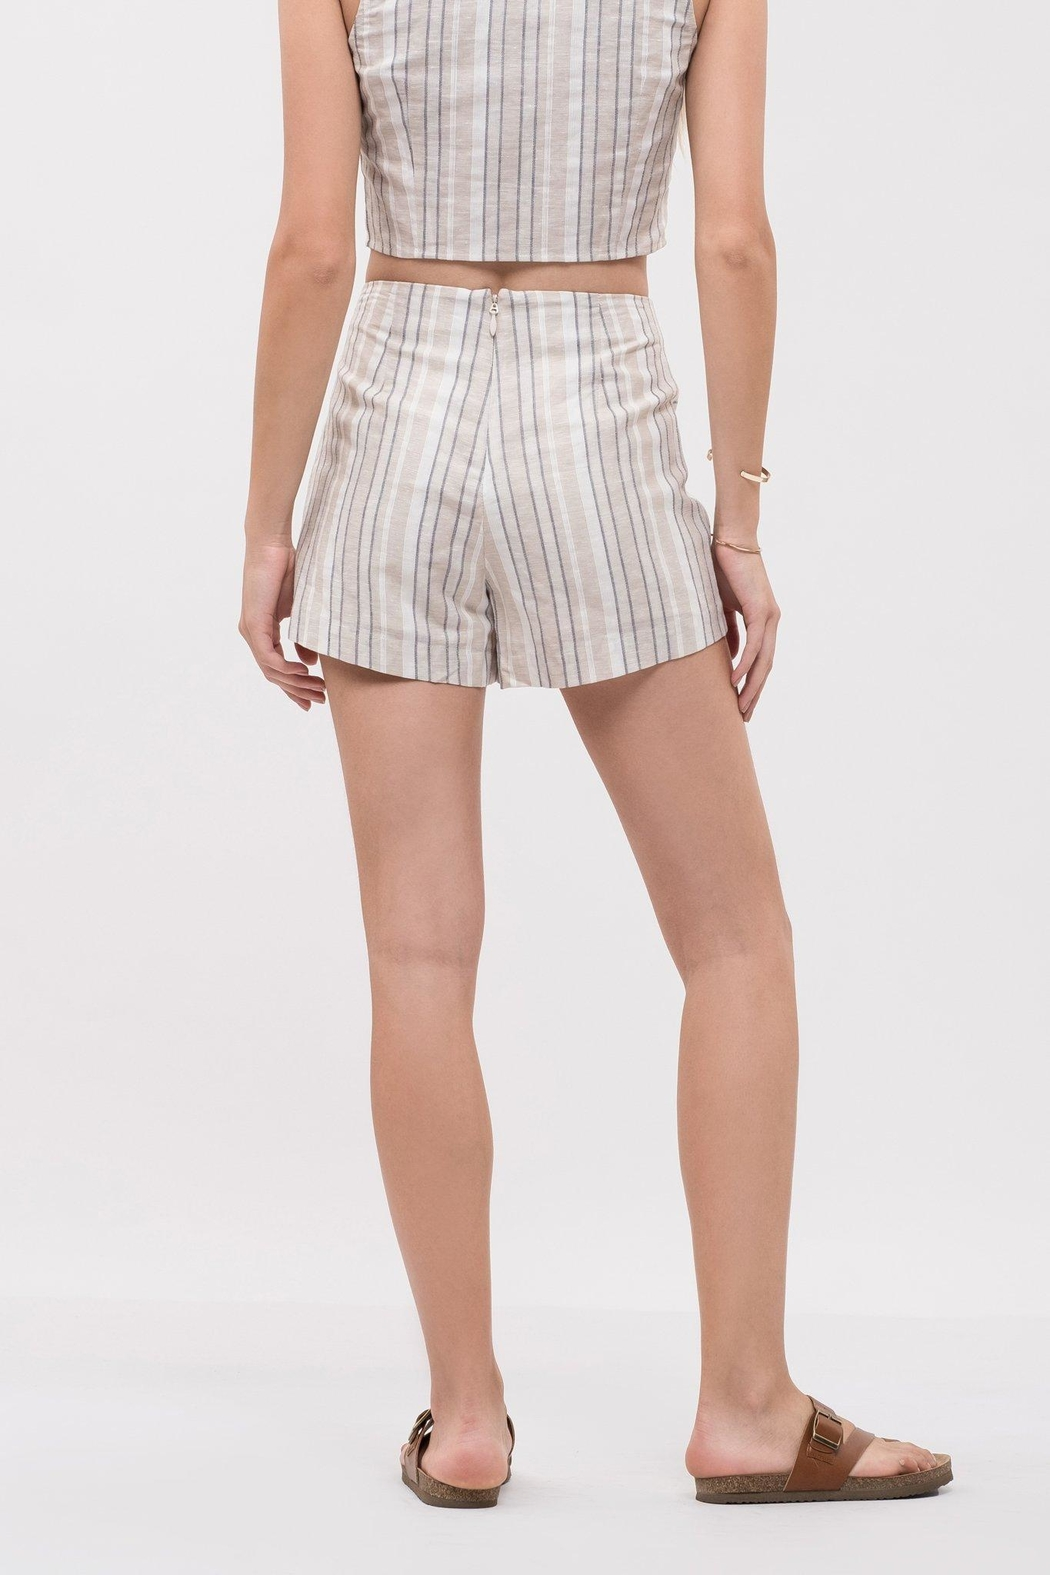 J.O.A. Tie Front Shorts - Front Full Image